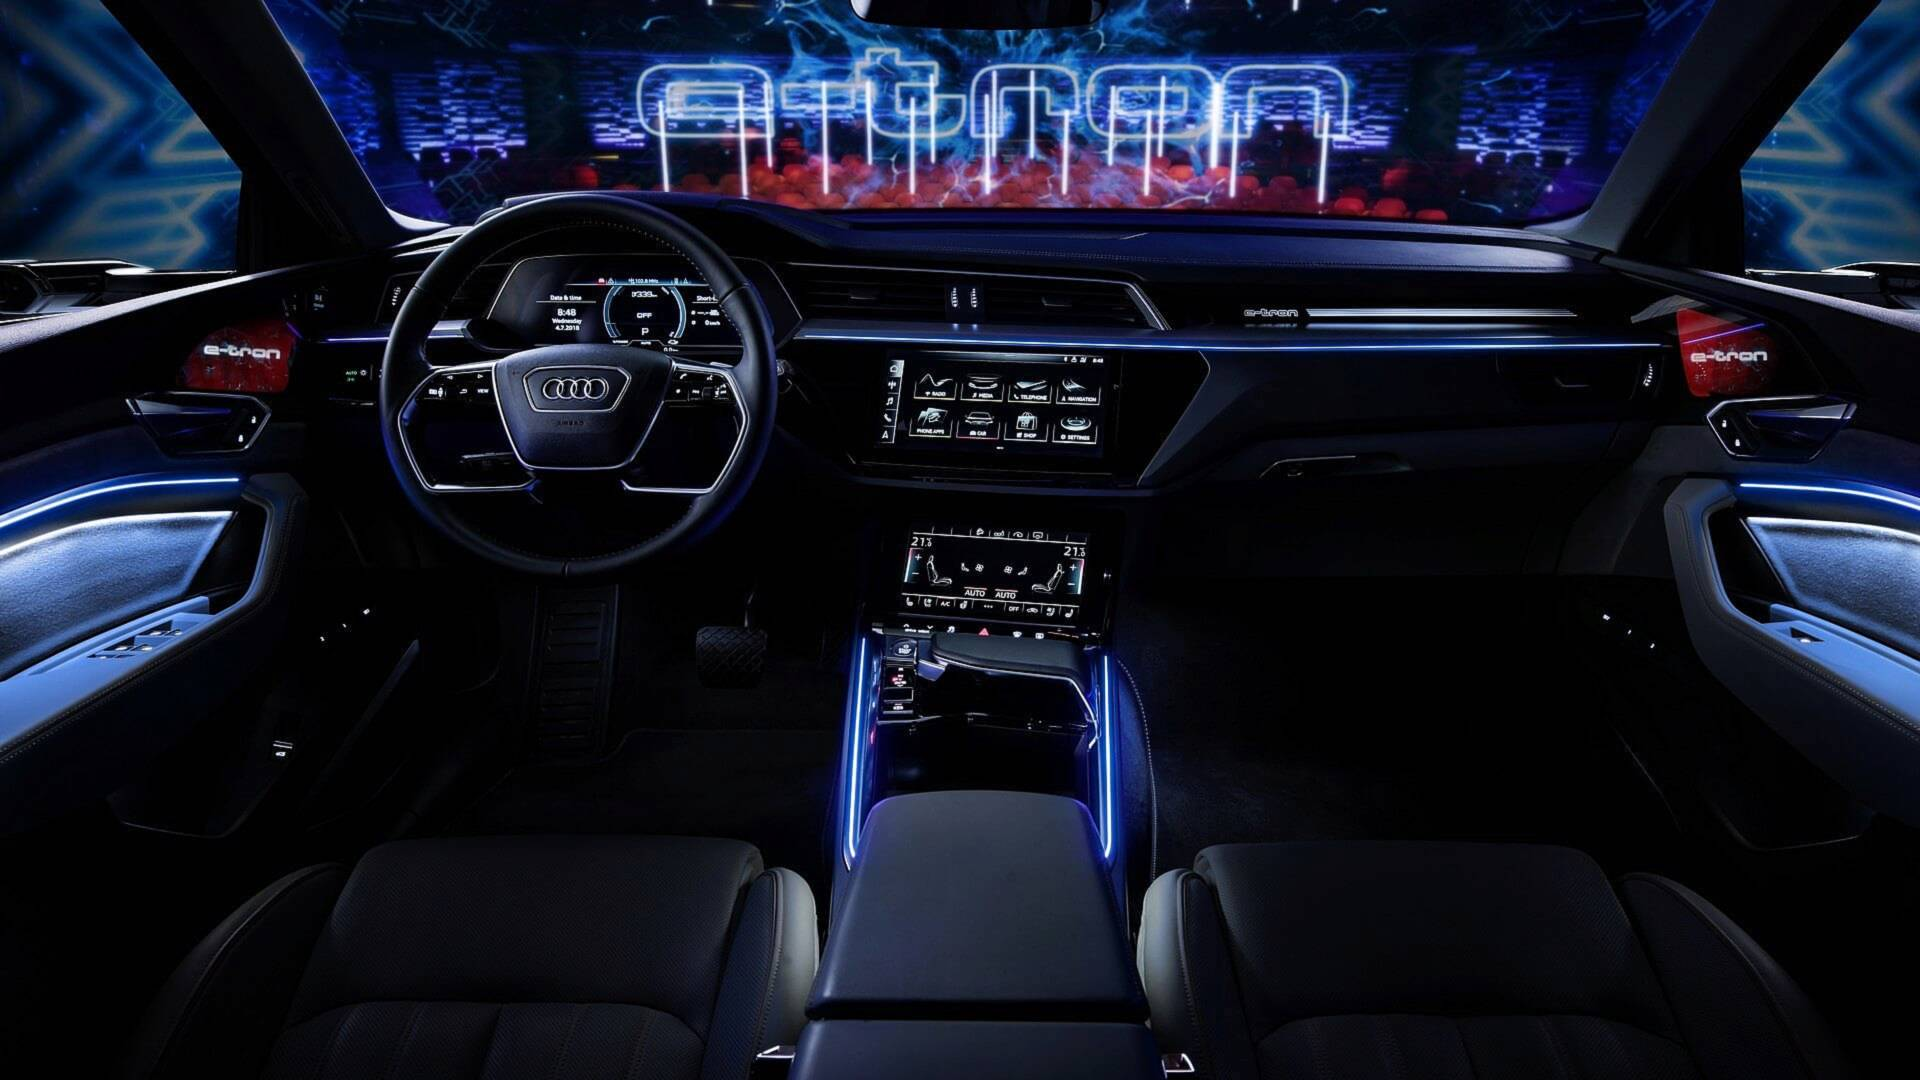 2019-audi-e-tron-debut-scheduled-for-september-17th-in-san-francisco_1